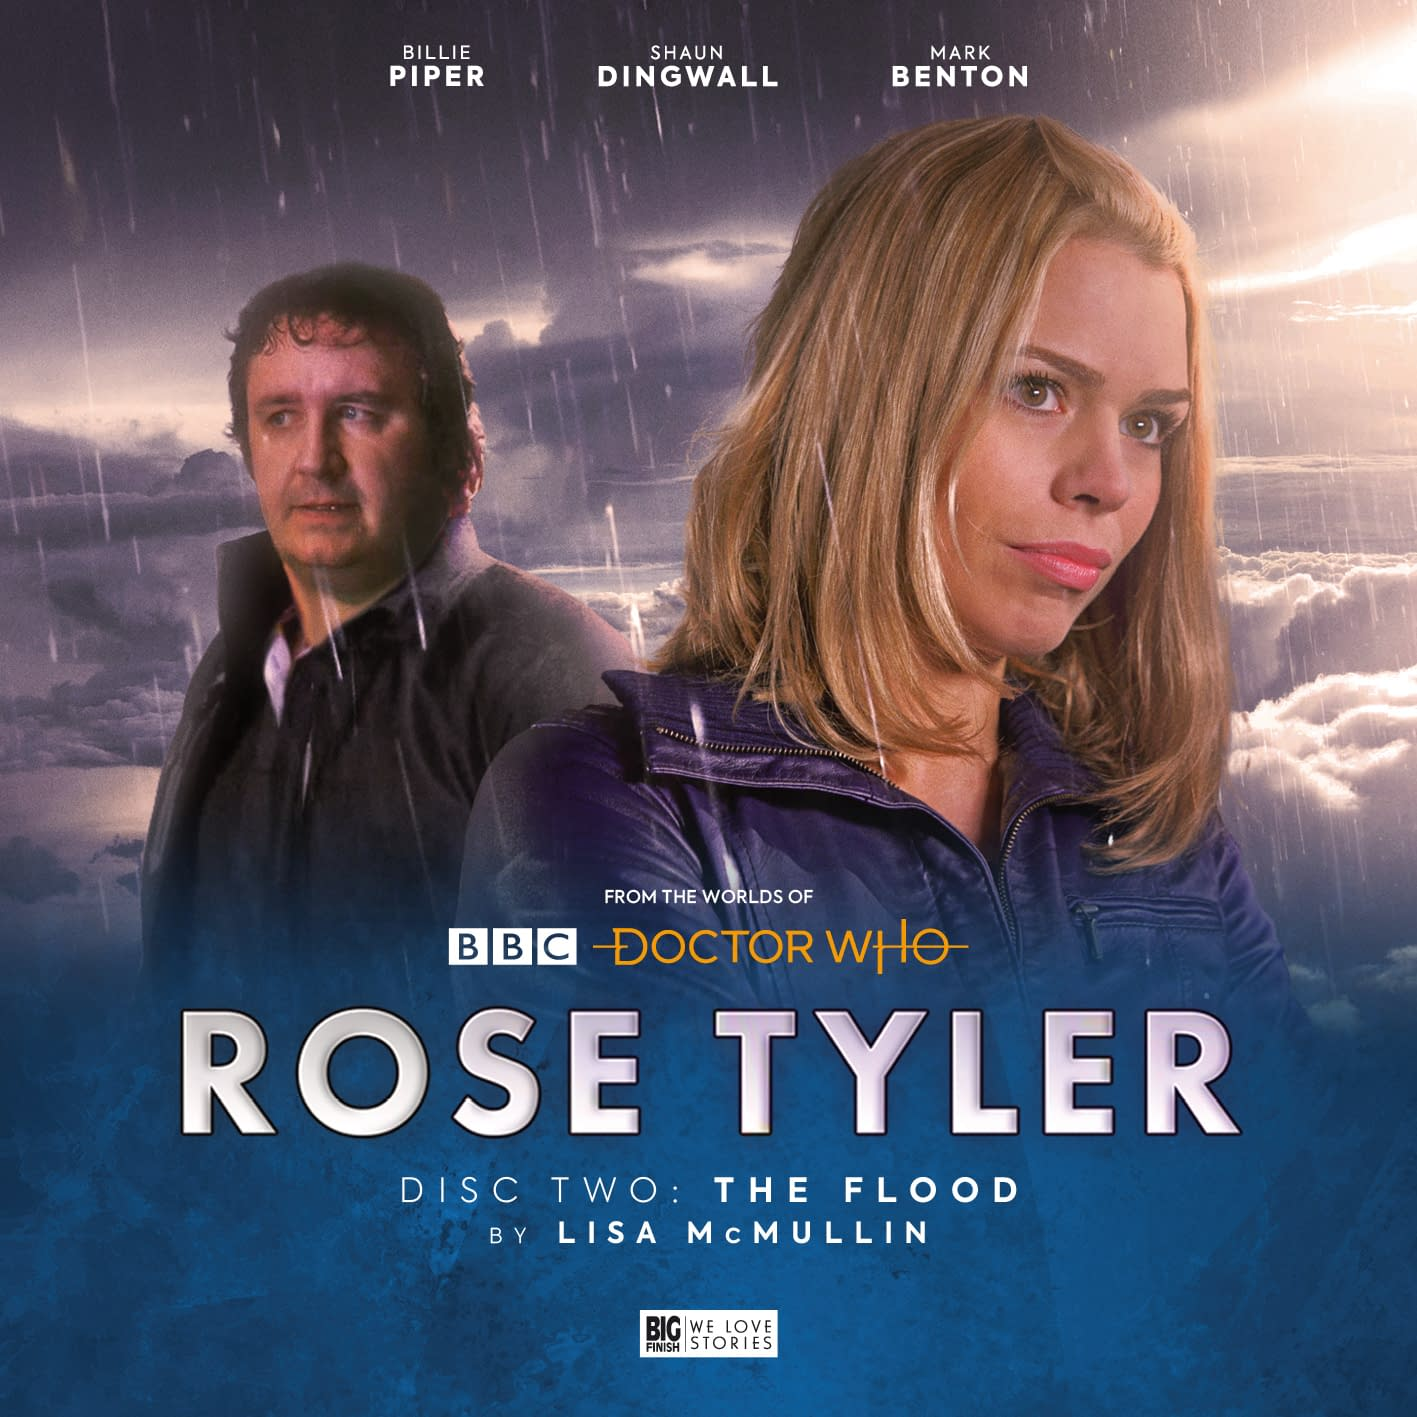 """Rose Tyler: The Dimension Cannon"": Billie Piper & Co. Shine in Big Finish ""Doctor Who"" Audio Drama Spinoff [SPOILER REVIEW]"